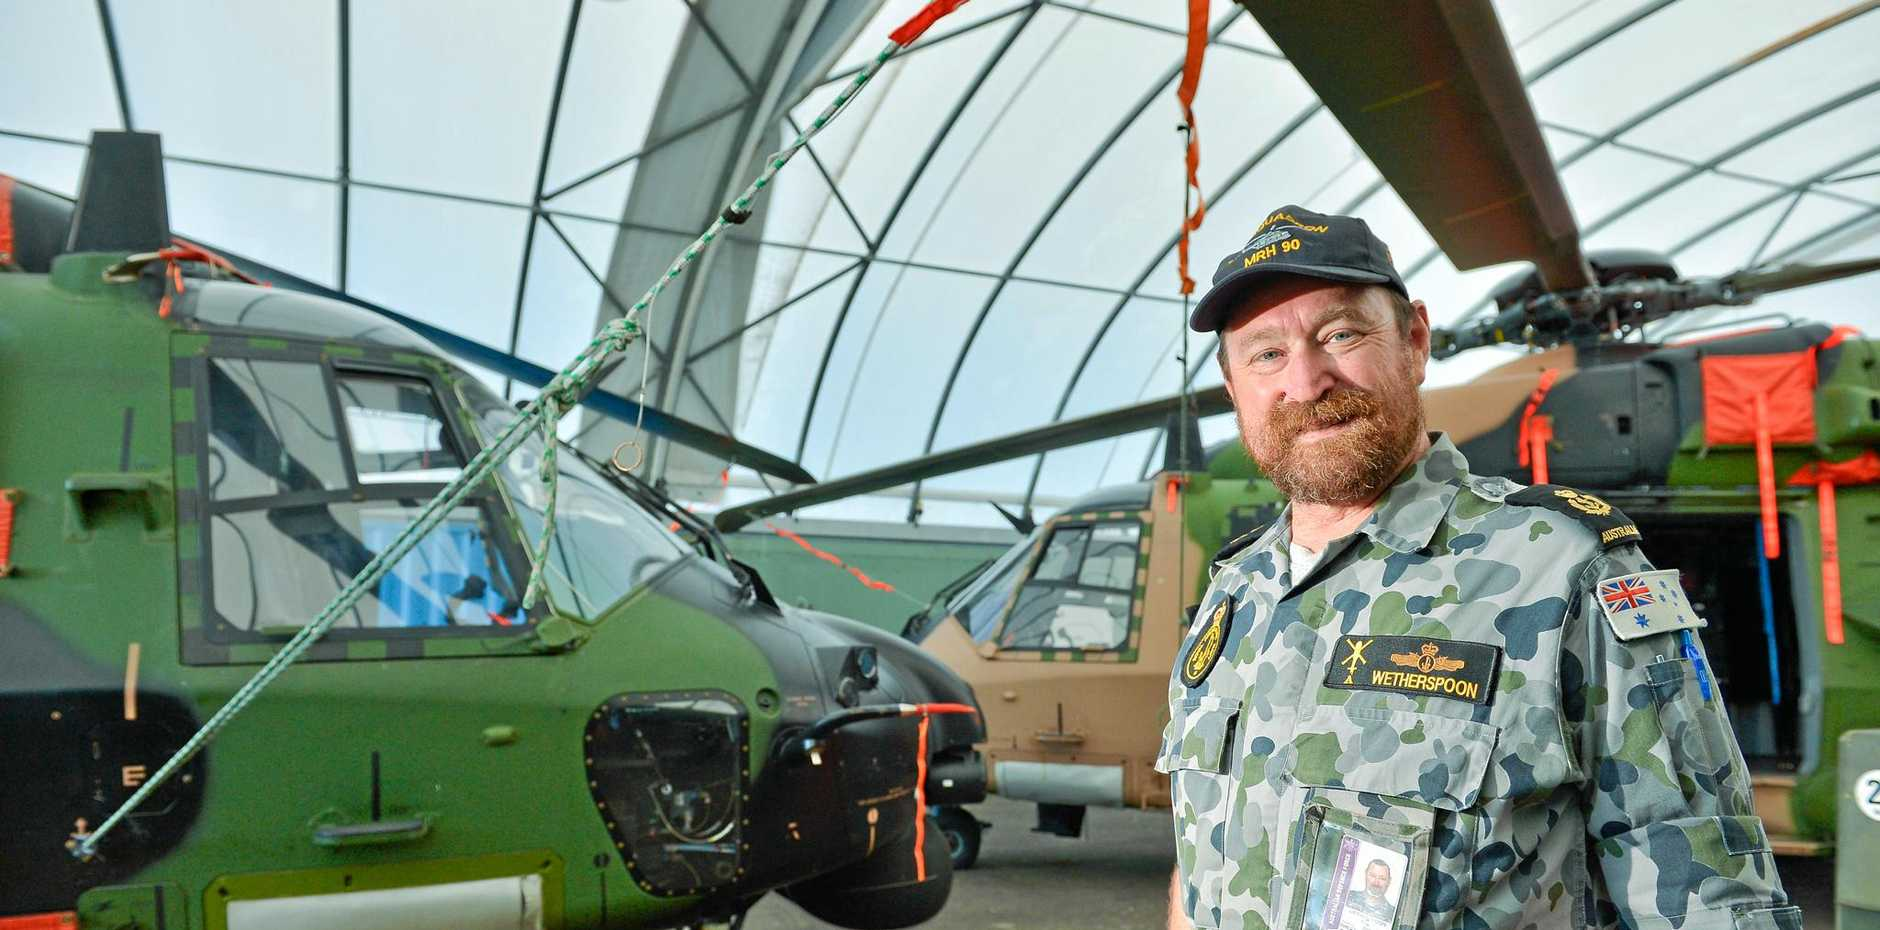 IMPORTANT: Chief Petty Officer Tony Wetherspoon has been helping maintain their MRH90 helicopters, which have been based in Gladstone to help deal with the effects of ex-Tropical Cyclone Debbie.